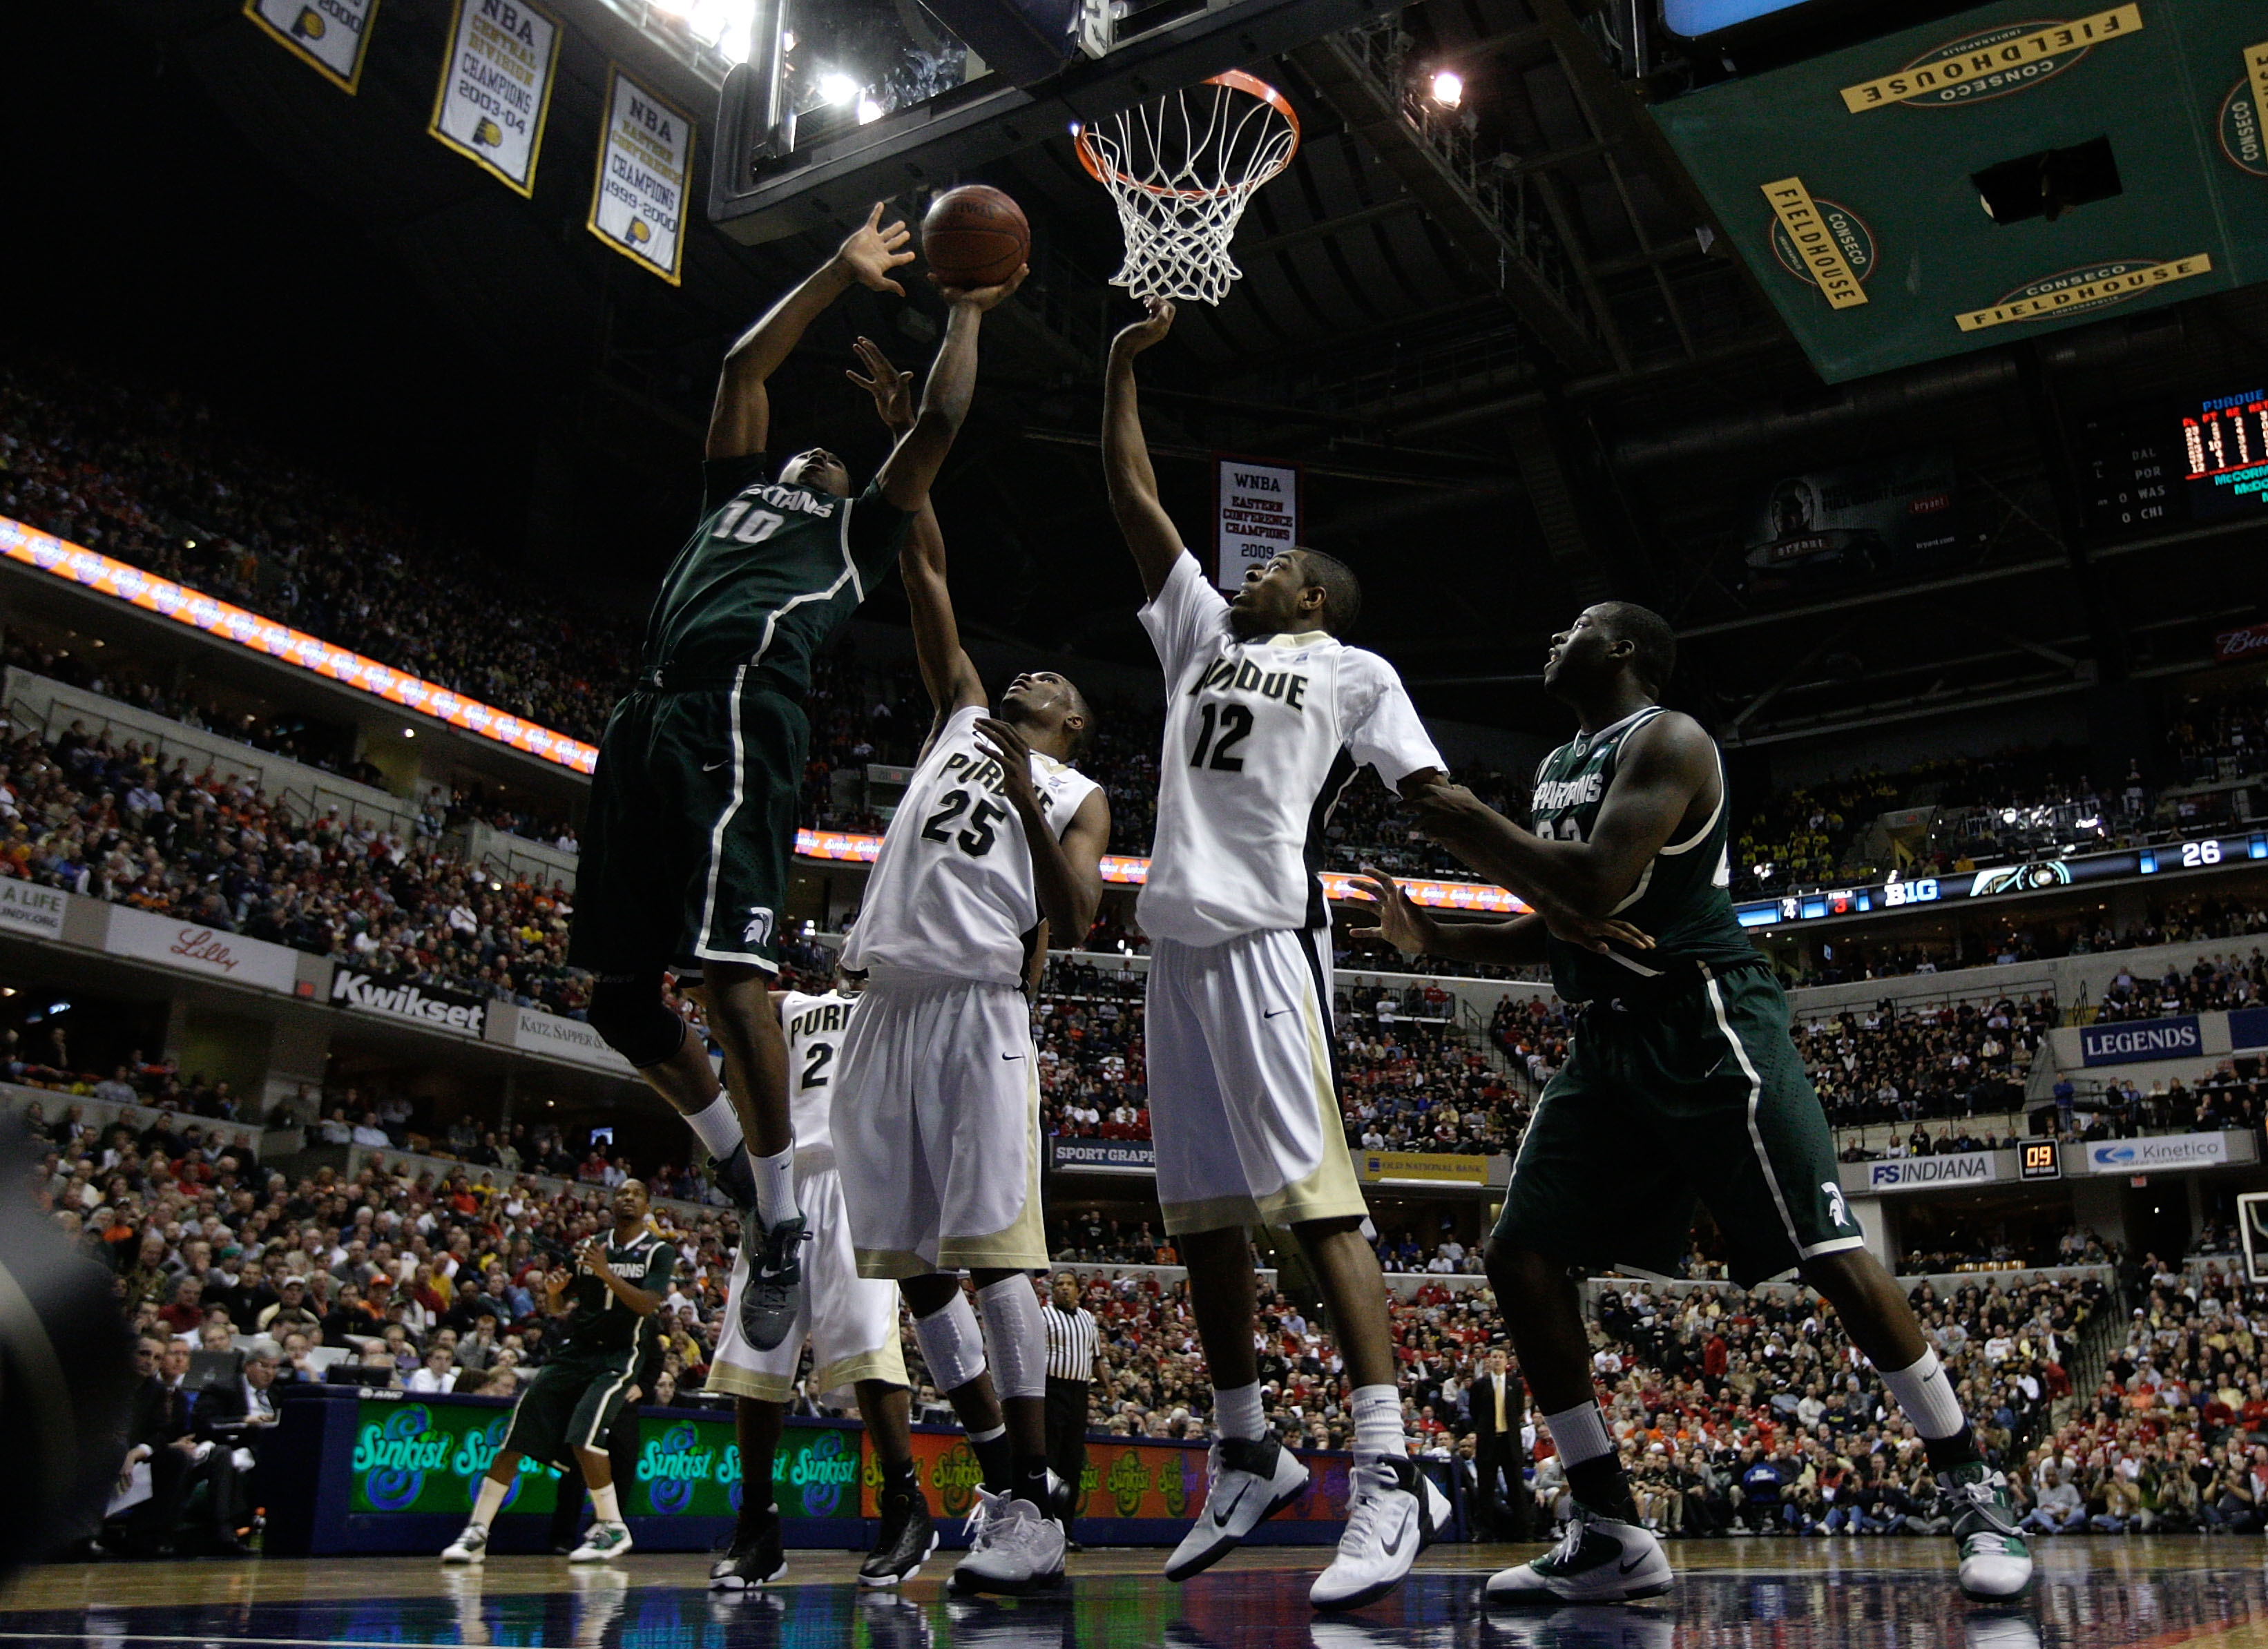 INDIANAPOLIS, IN - MARCH 11:  Delvon Roe #10 of the Michigan State Spartans attempts a shot against JaJuan Johnson #25 and Kelsey Barlow #12 of the Purdue Boilermakers during the quarterfinals of the 2011 Big Ten Men's Basketball Tournament at Conseco Fie